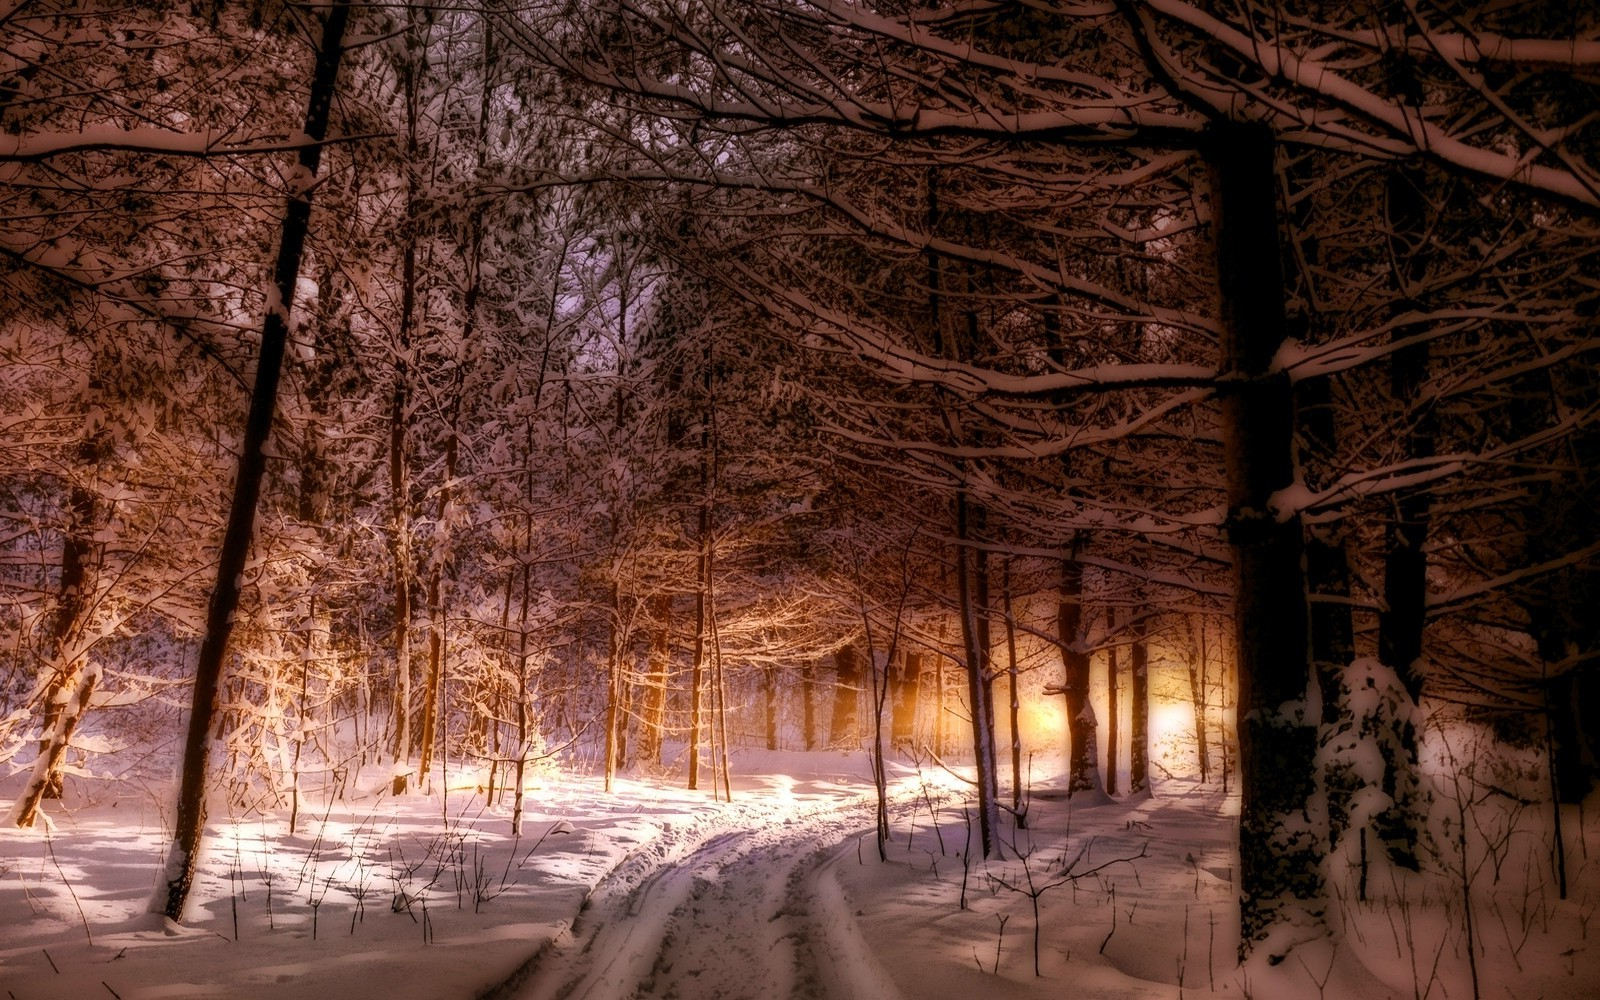 Snow Anime Wallpaper Nature Landscape Maine Forest Winter Path Snow